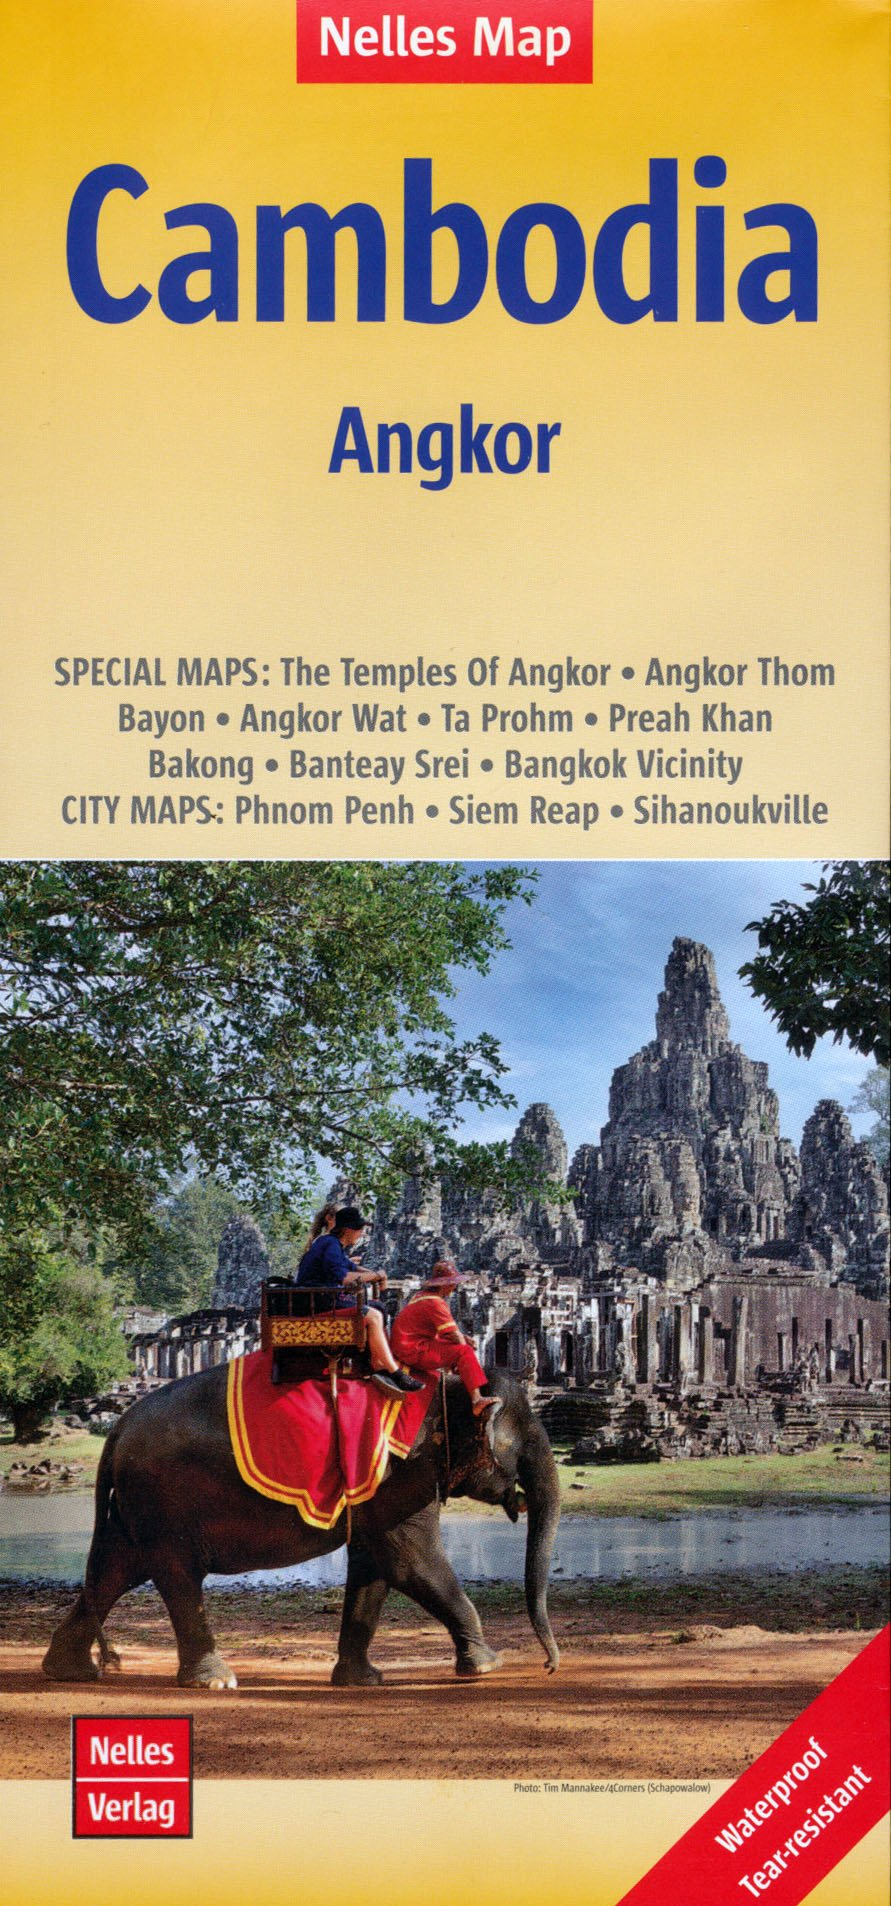 Cambodia 1:1,500,000 Travel Map & Angkor details, waterproof NELLES